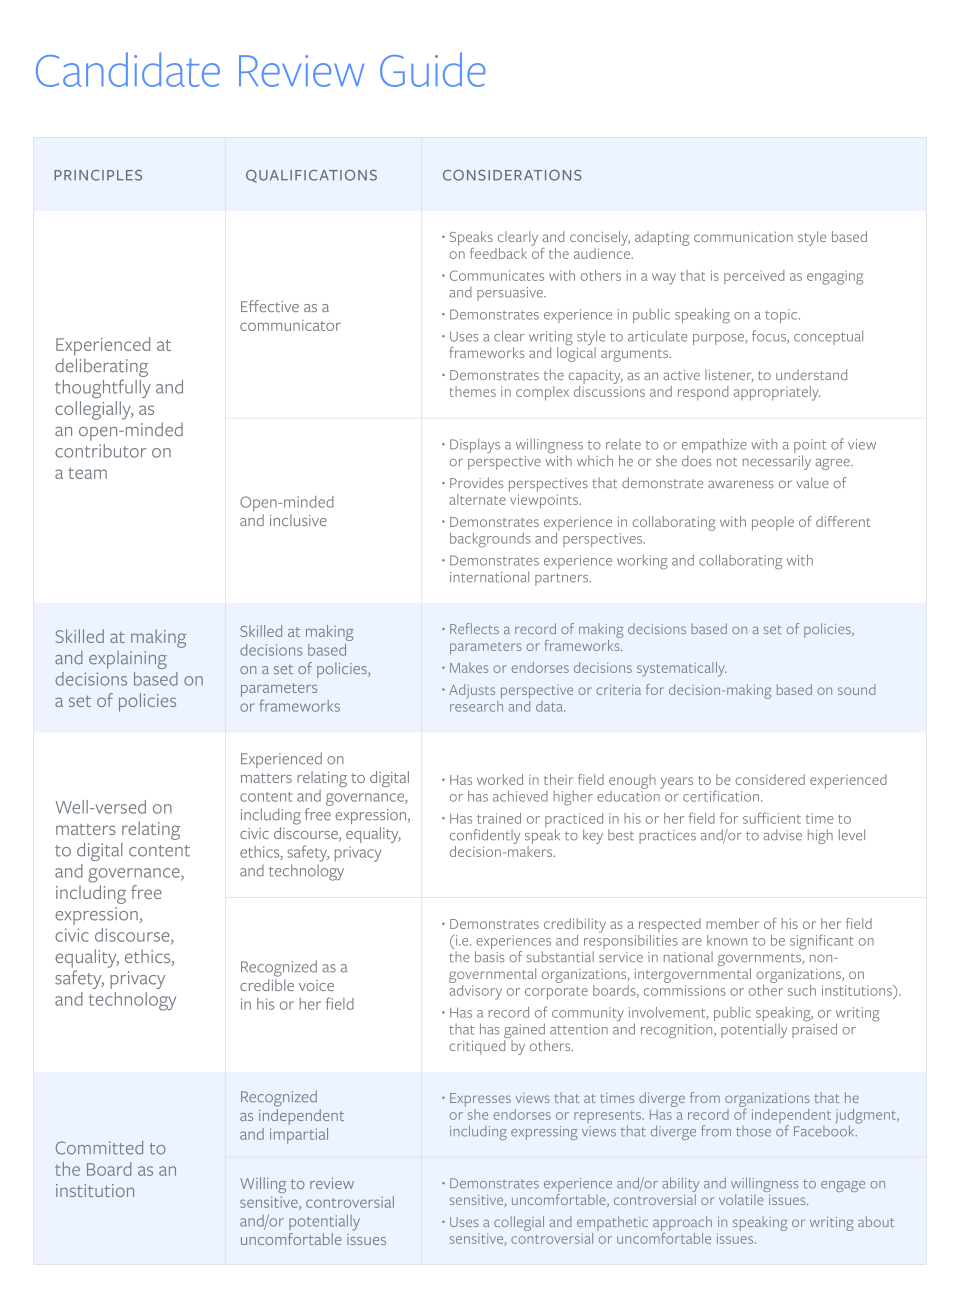 Facebook Oversight Board candidate review guide